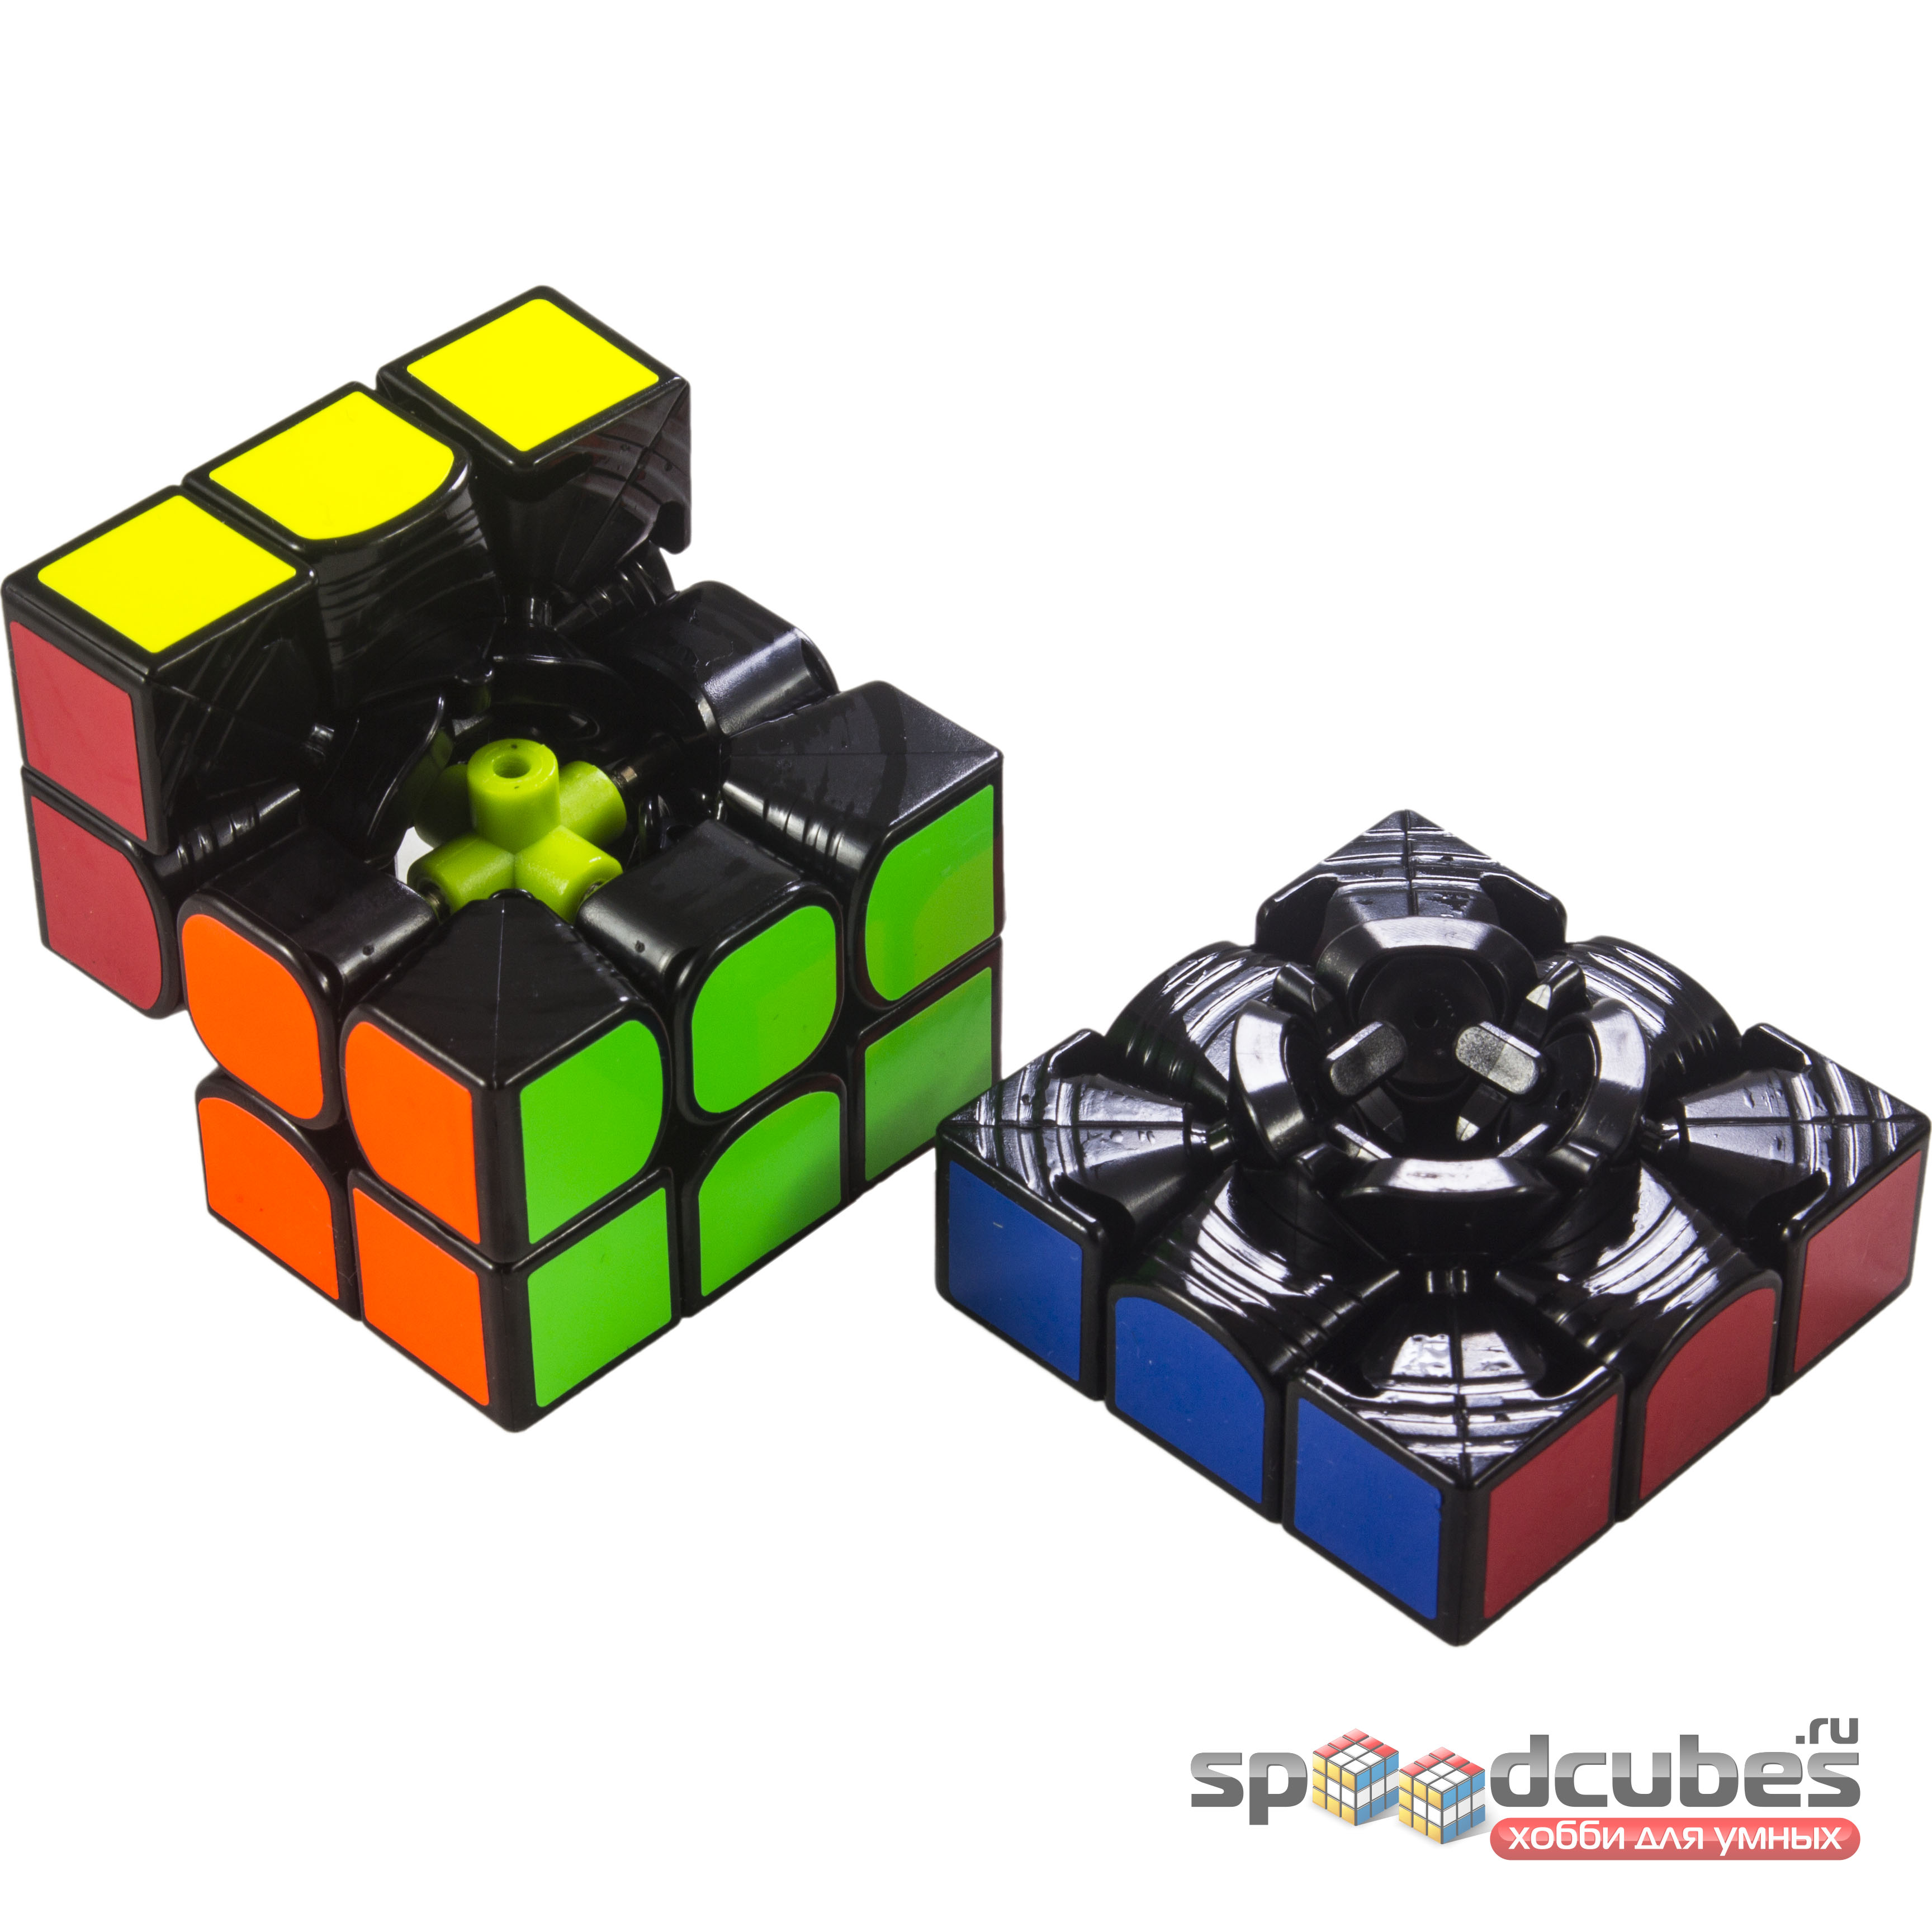 Qiyi Mofangge The Valk 3 Mini Black 4